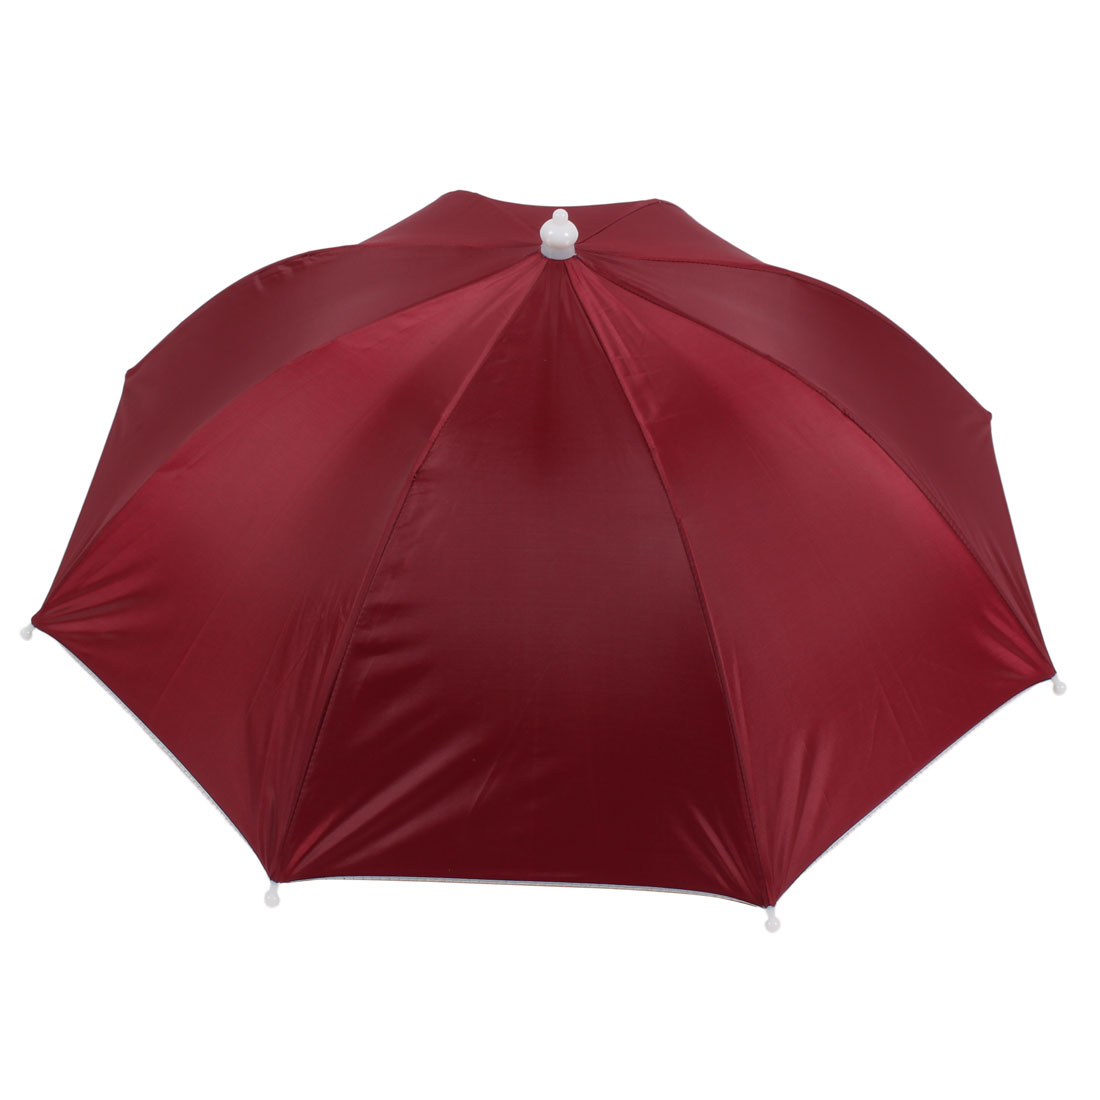 Red Umbrella Hat Golf Fishing Camping Headwear Cap